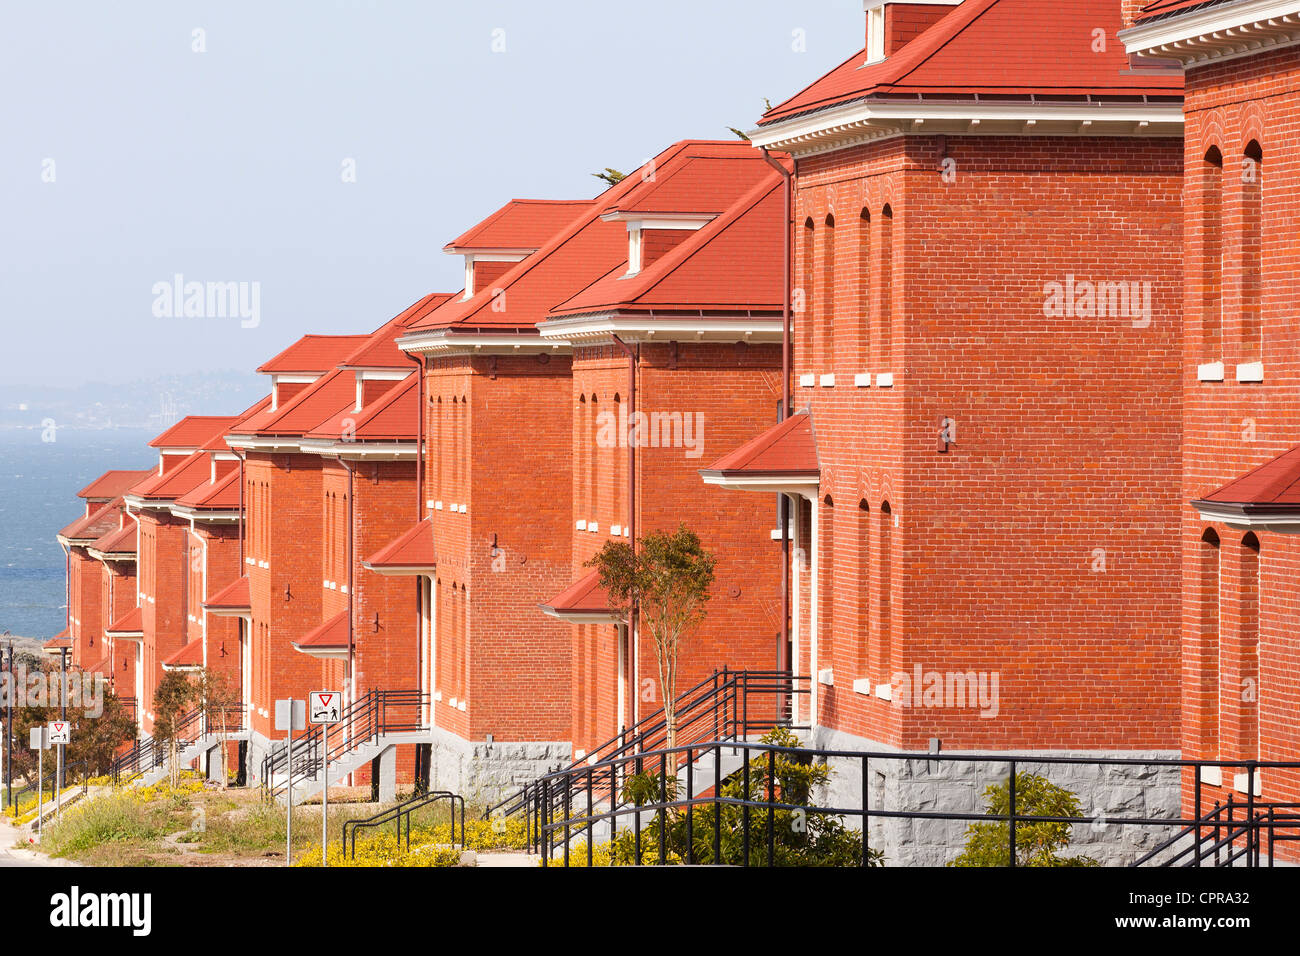 A row of brick buildings - Stock Image